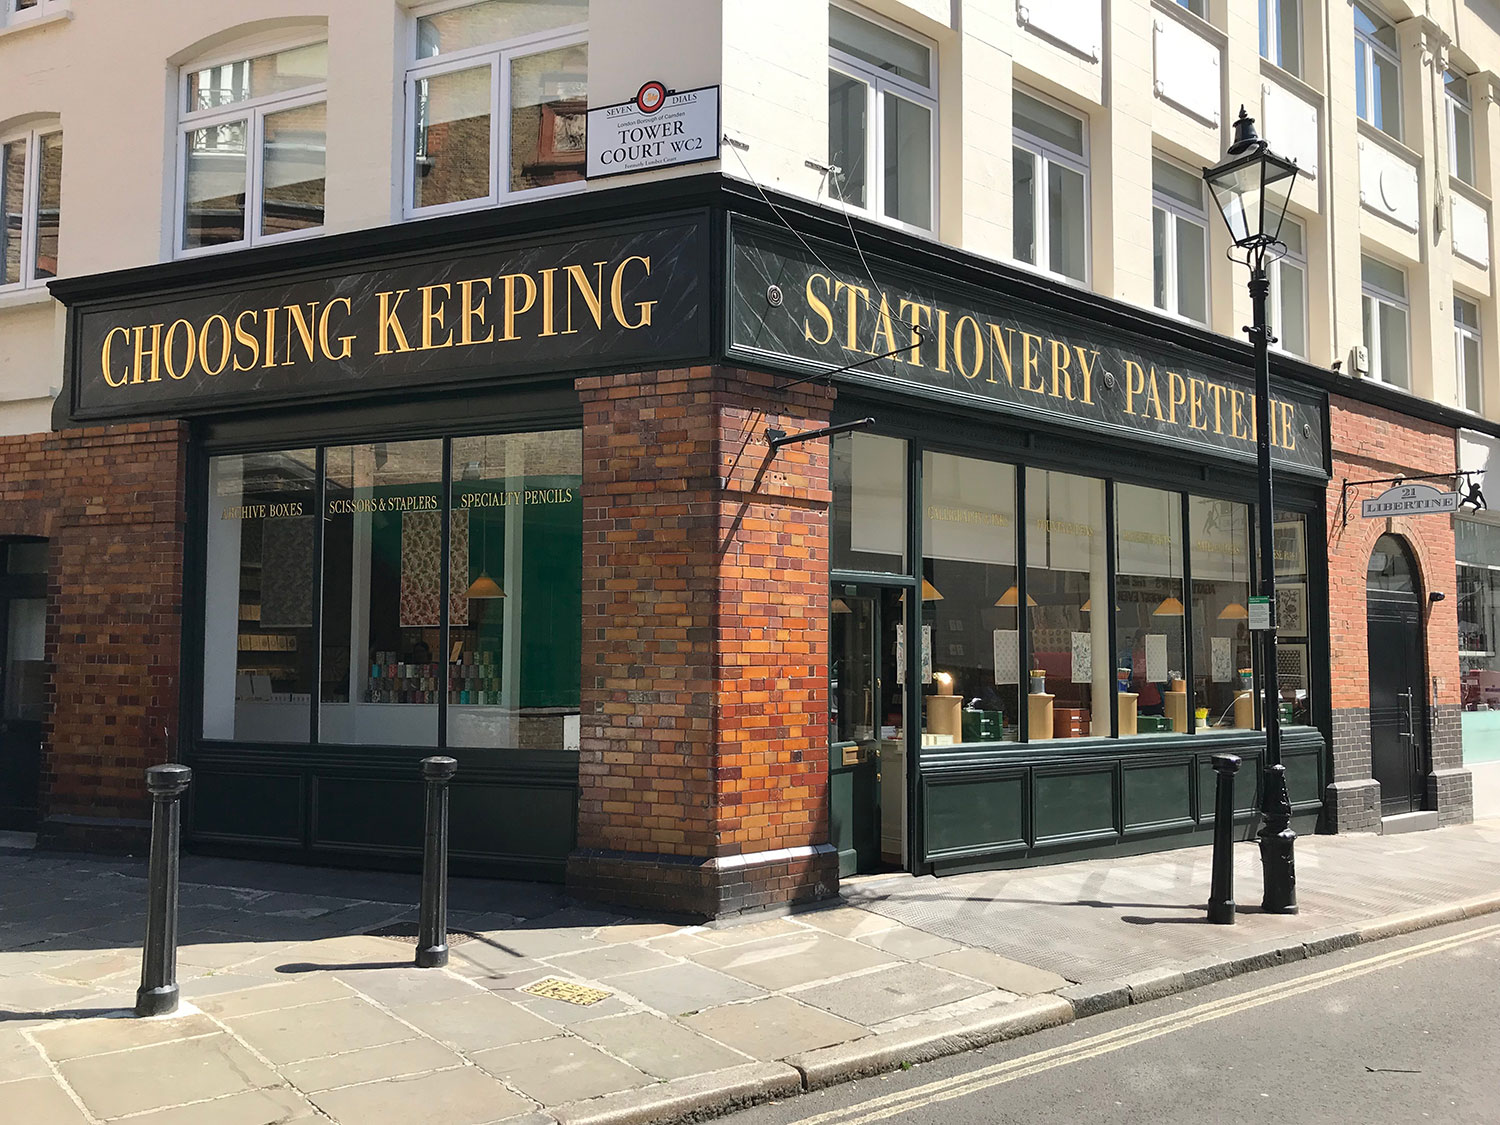 stationery shops west end london - choosing keeping